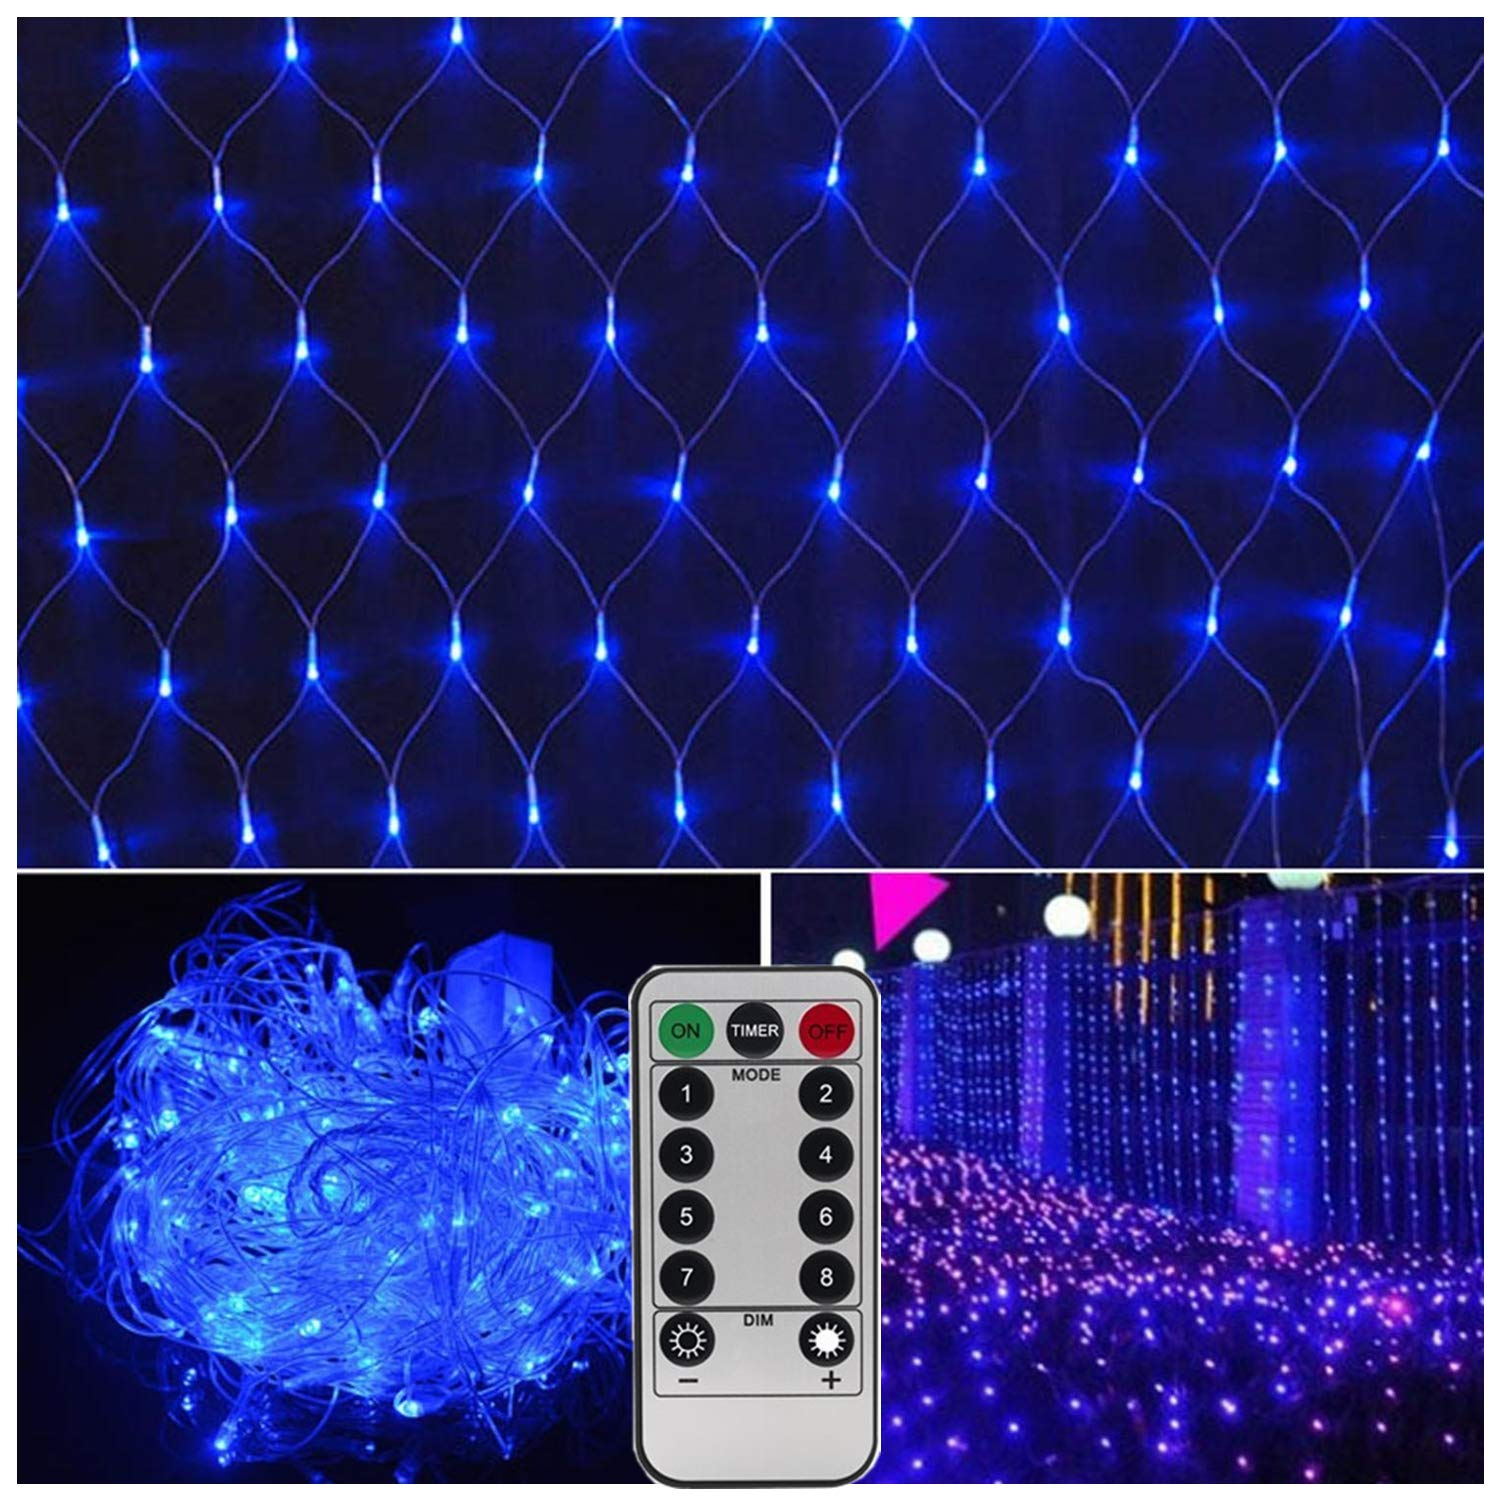 Need 3 X Type D Batteries DealBeta Not Included Battery Operated Warm White 300 LEDs Remote Window Curtain Lights,9 Mode String Lights Ideal for Outdoor Wedding,Christmas,Party,Bedroom,Bar,RV,Mall Decor-